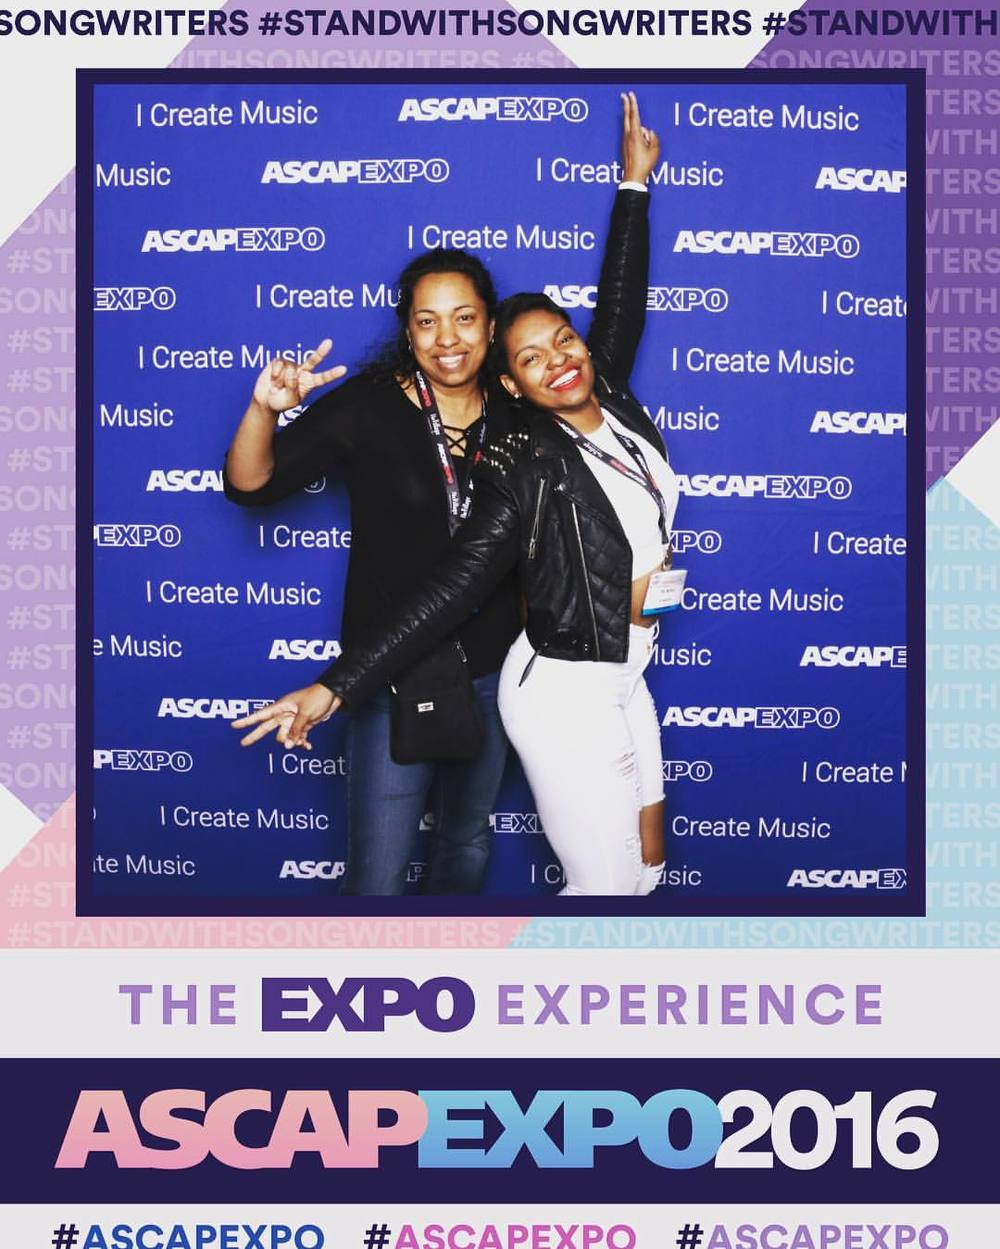 😝 #ASCAPEXPO #Songwriters (at Los Angeles, California)